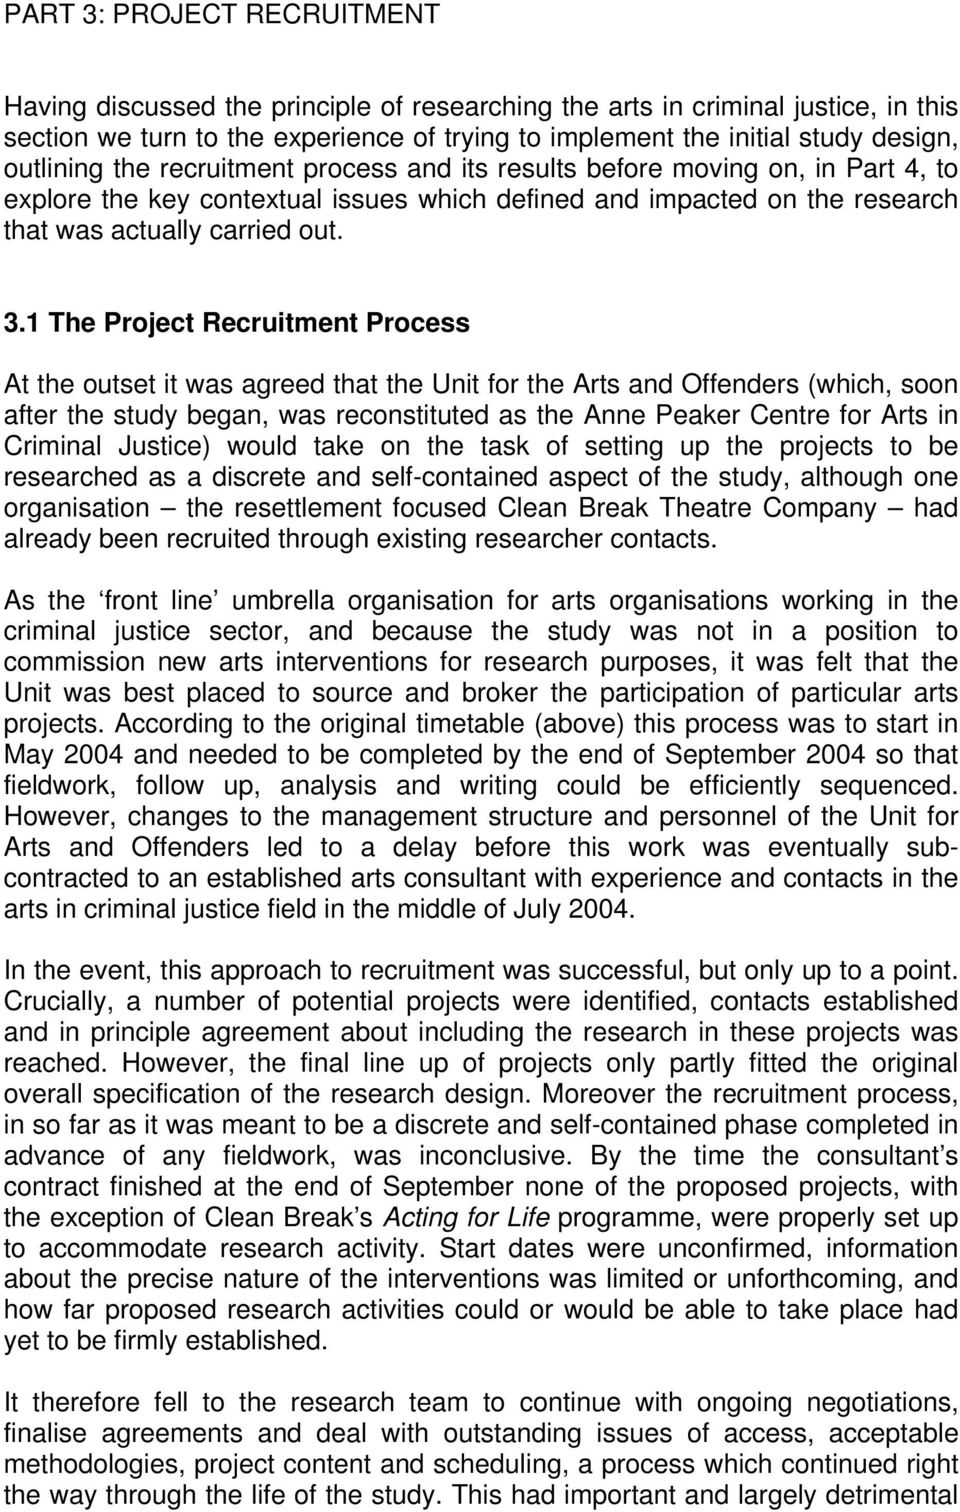 1 The Project Recruitment Process At the outset it was agreed that the Unit for the Arts and Offenders (which, soon after the study began, was reconstituted as the Anne Peaker Centre for Arts in